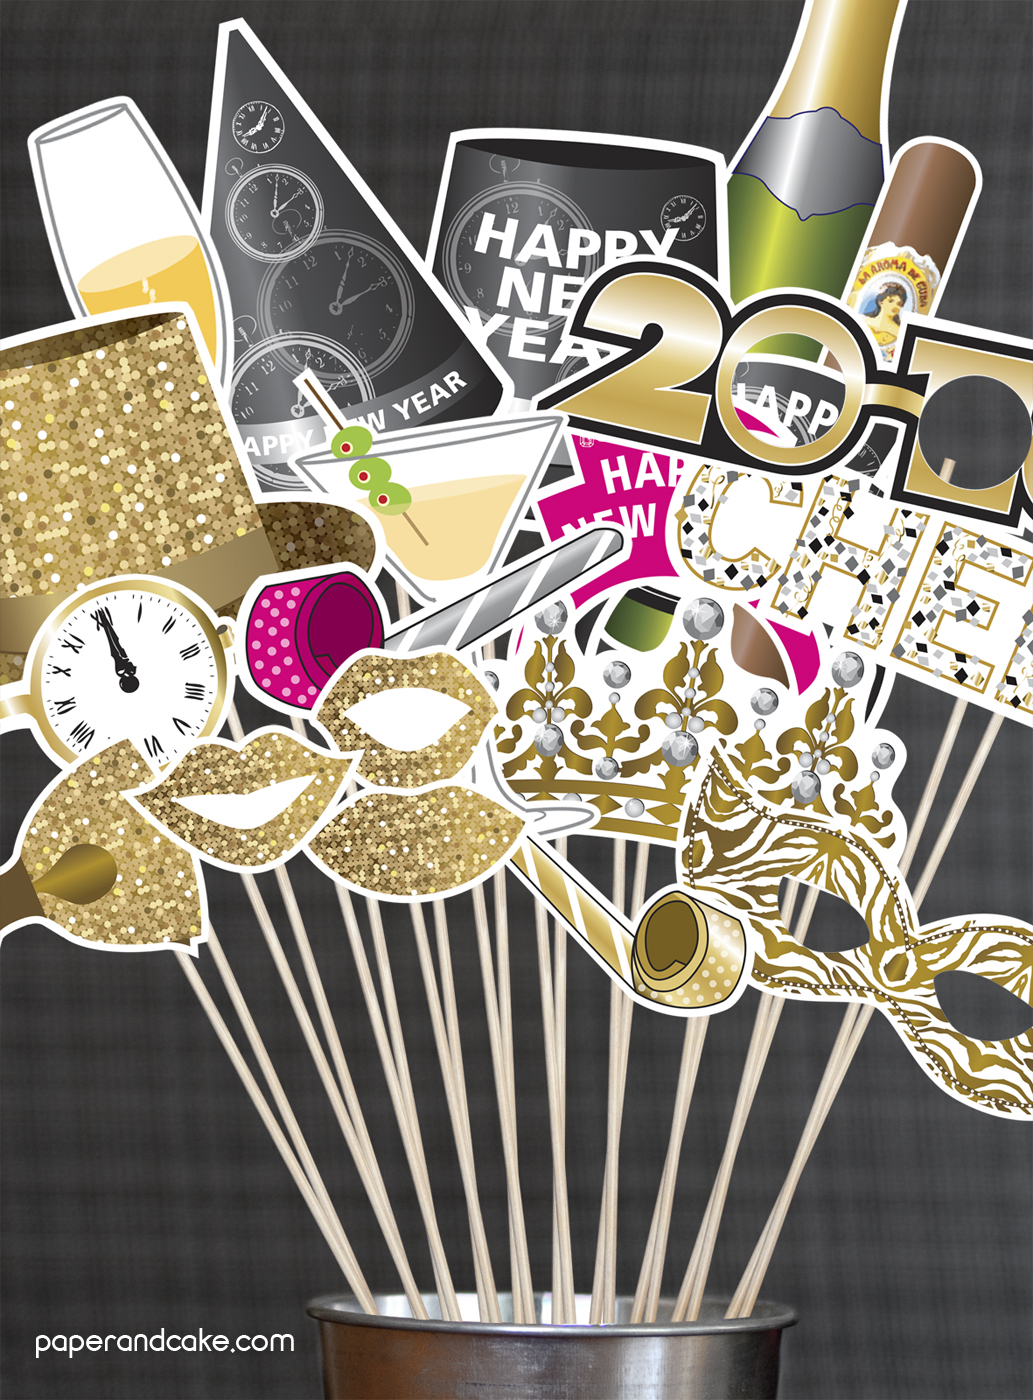 Happy New Year Photo Booth Props Diy Kit Paper And Cake